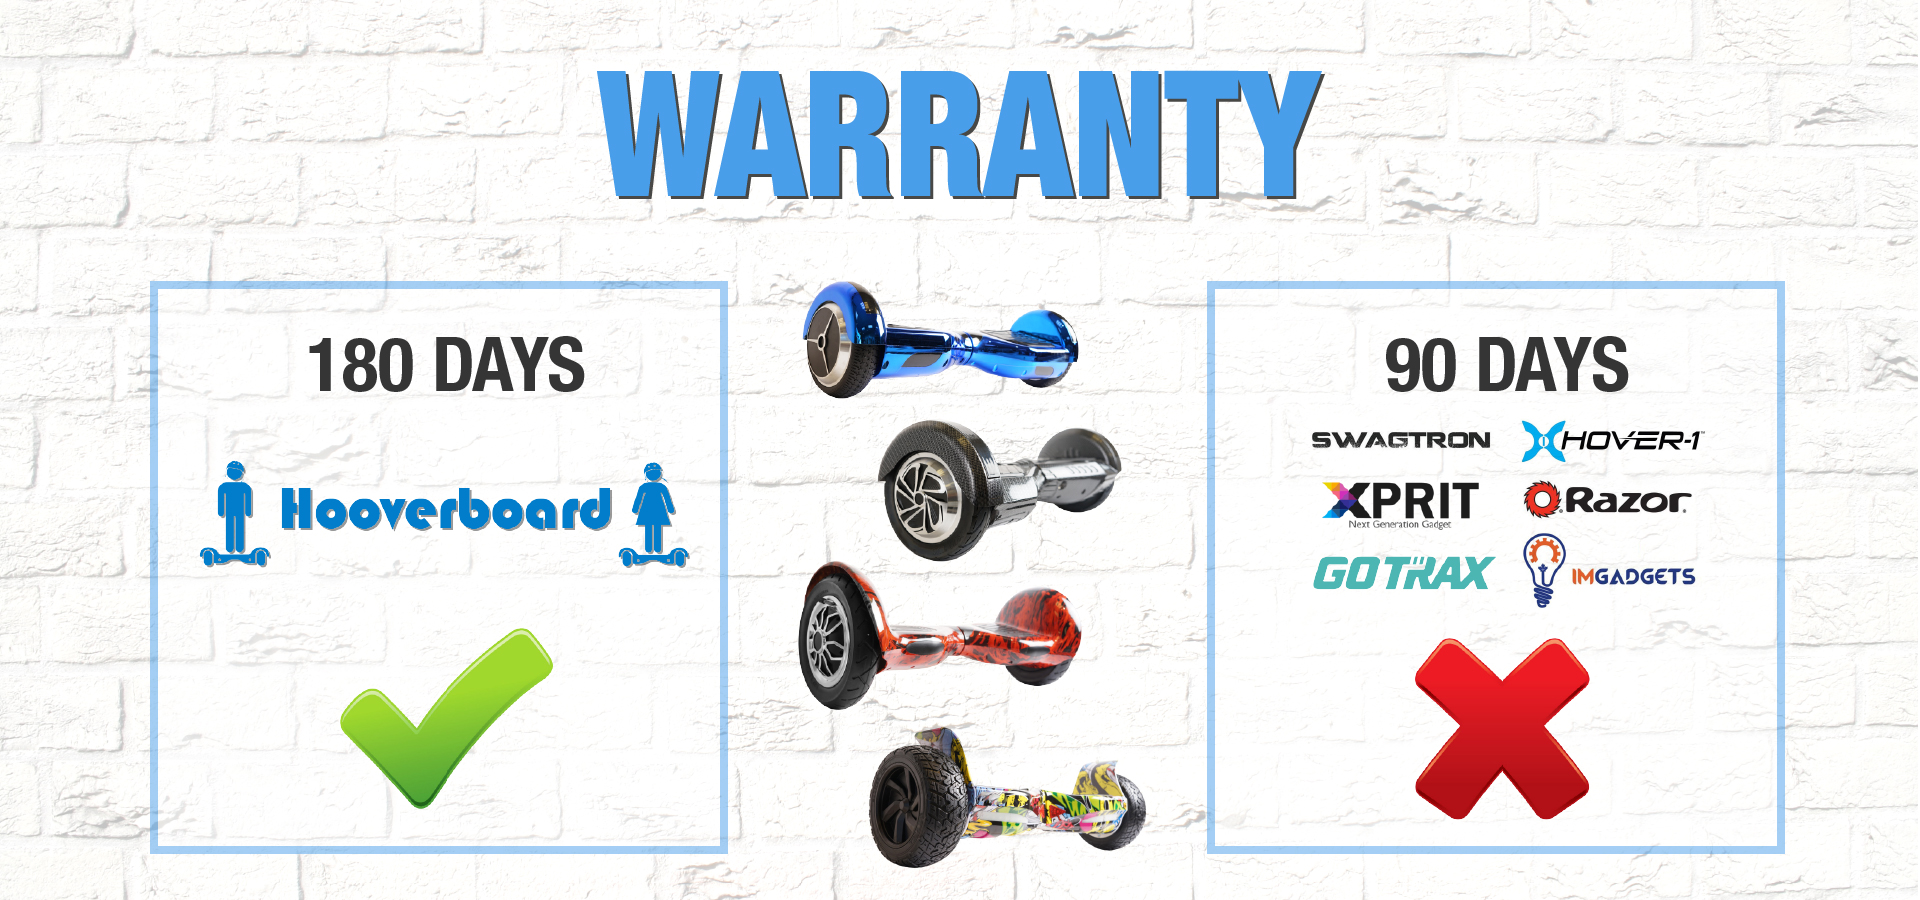 hooverboard-warranty.jpg